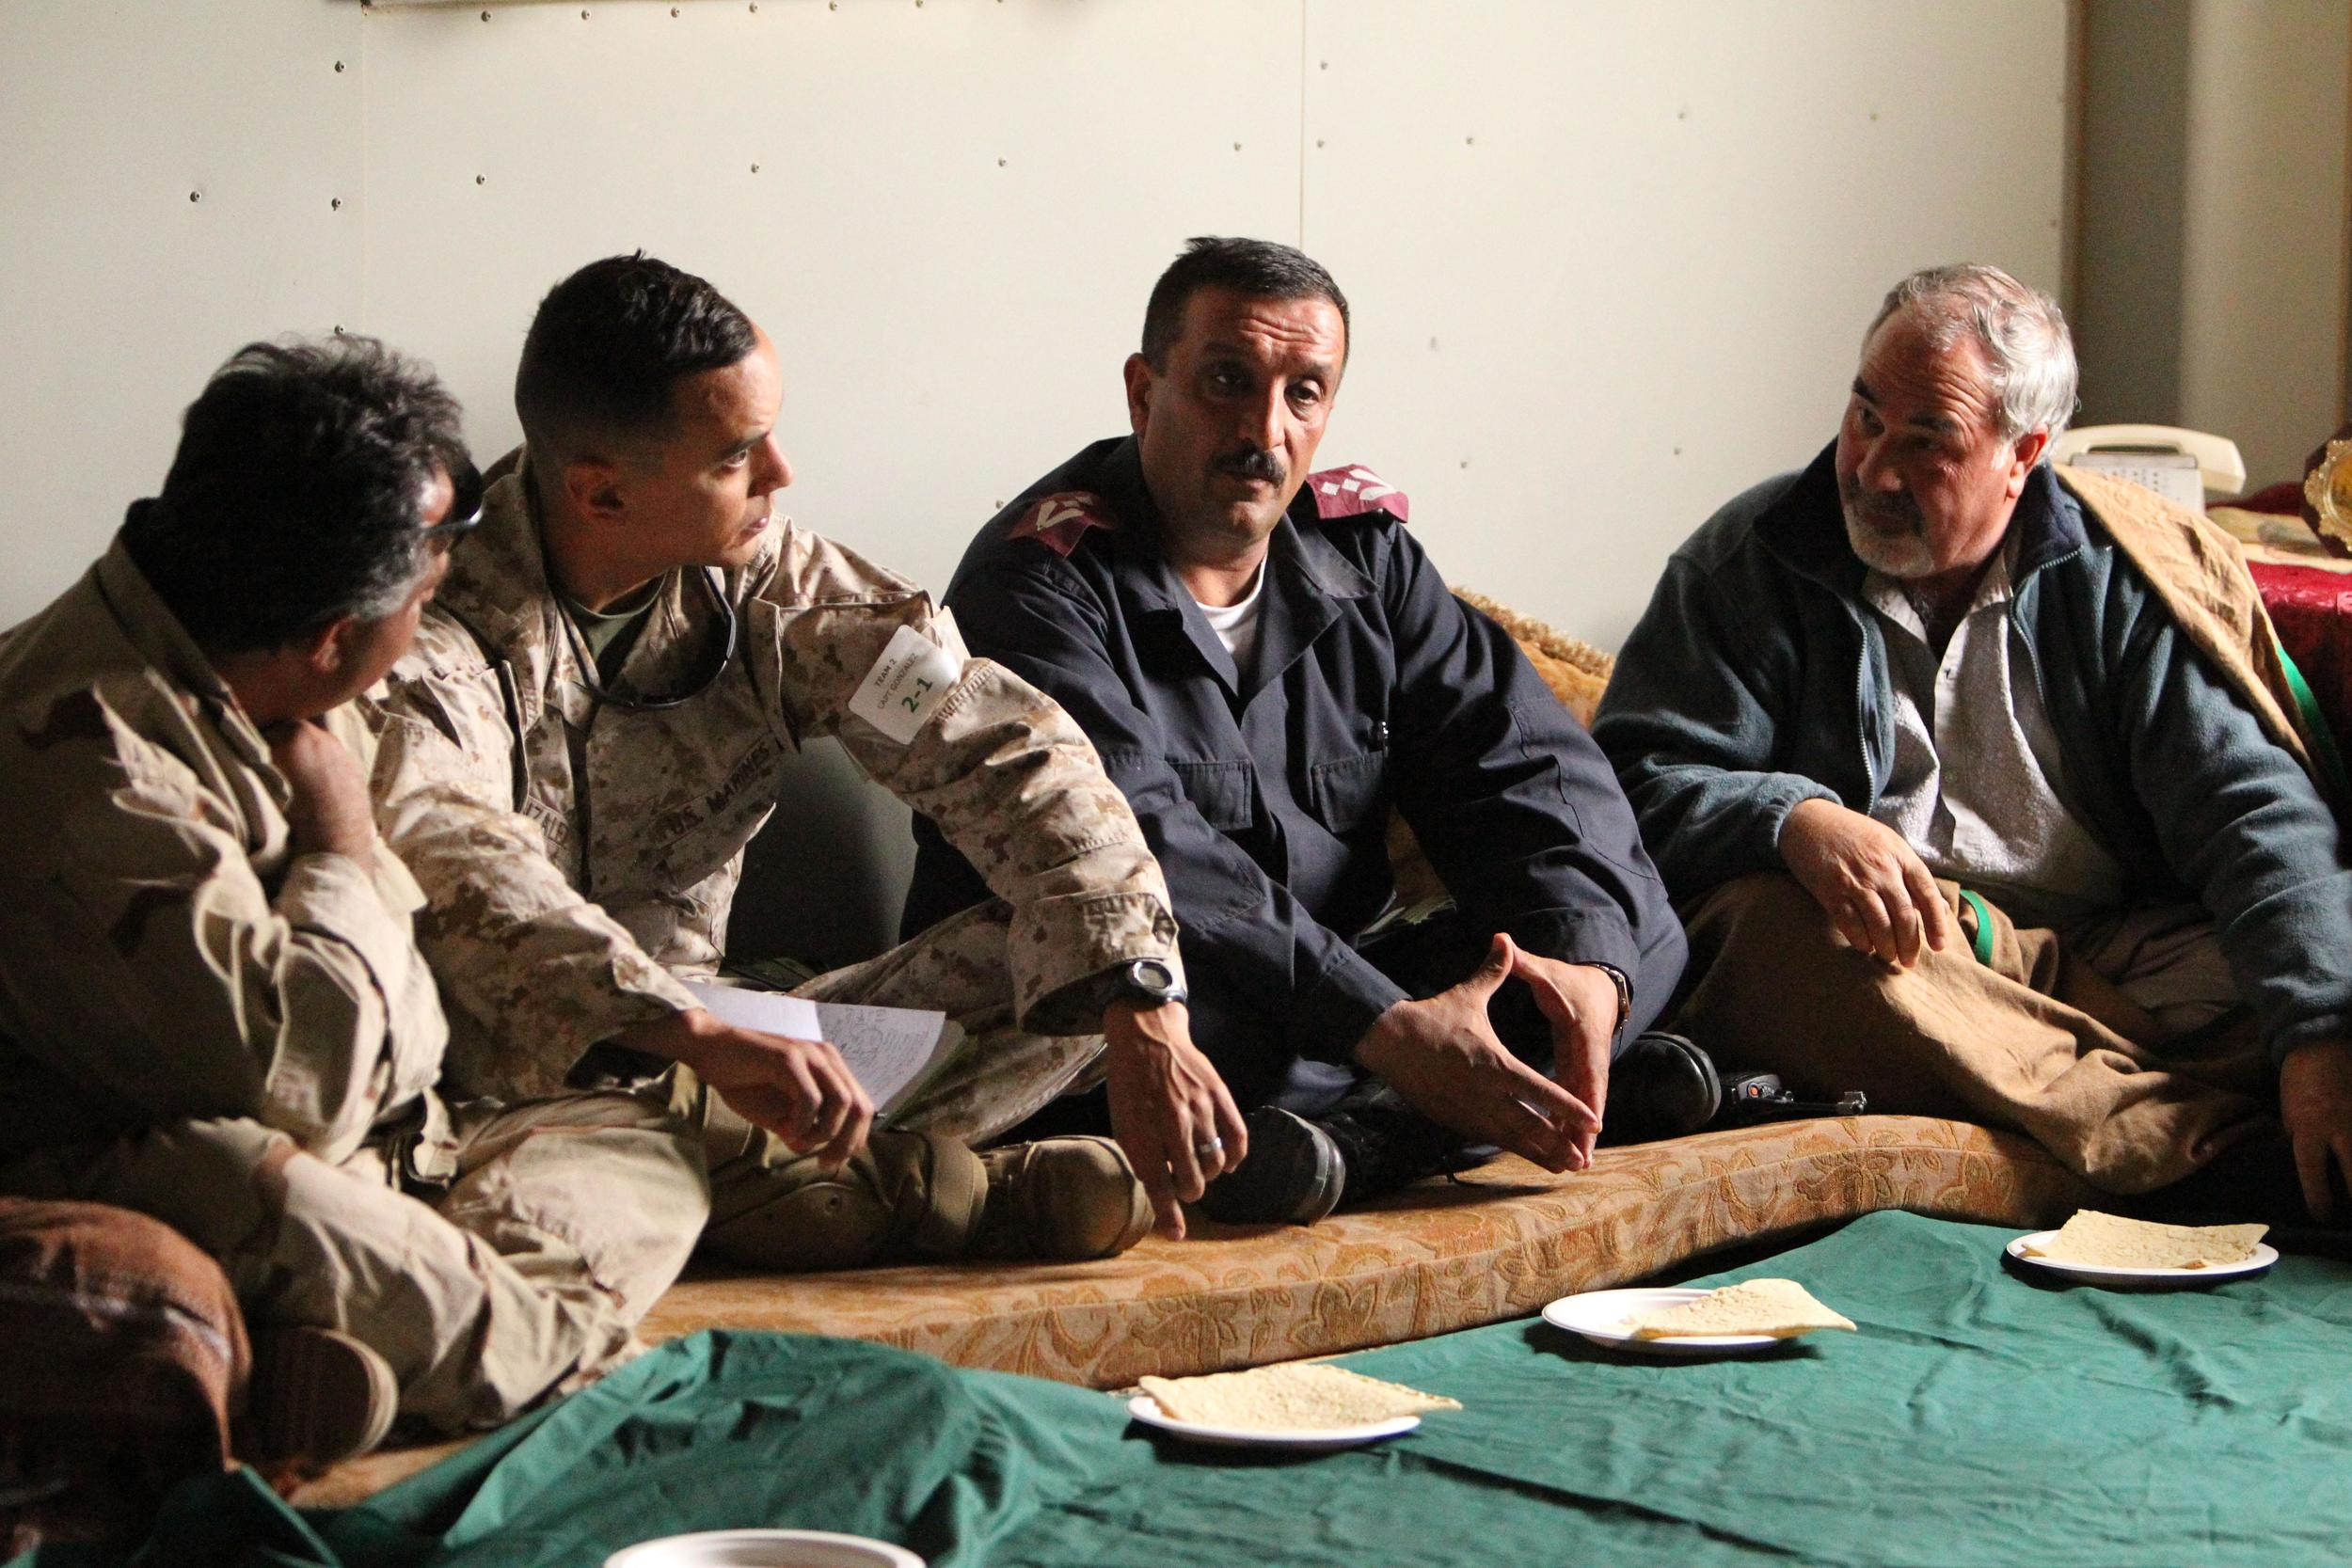 Marines and role players playing Afghani army, police, and village elders, talk during an exercise during an Advisor Training Course at Twentynine Palms. Photo by Lance Cpl. Andrew Thorburn, United States Marine Corps.